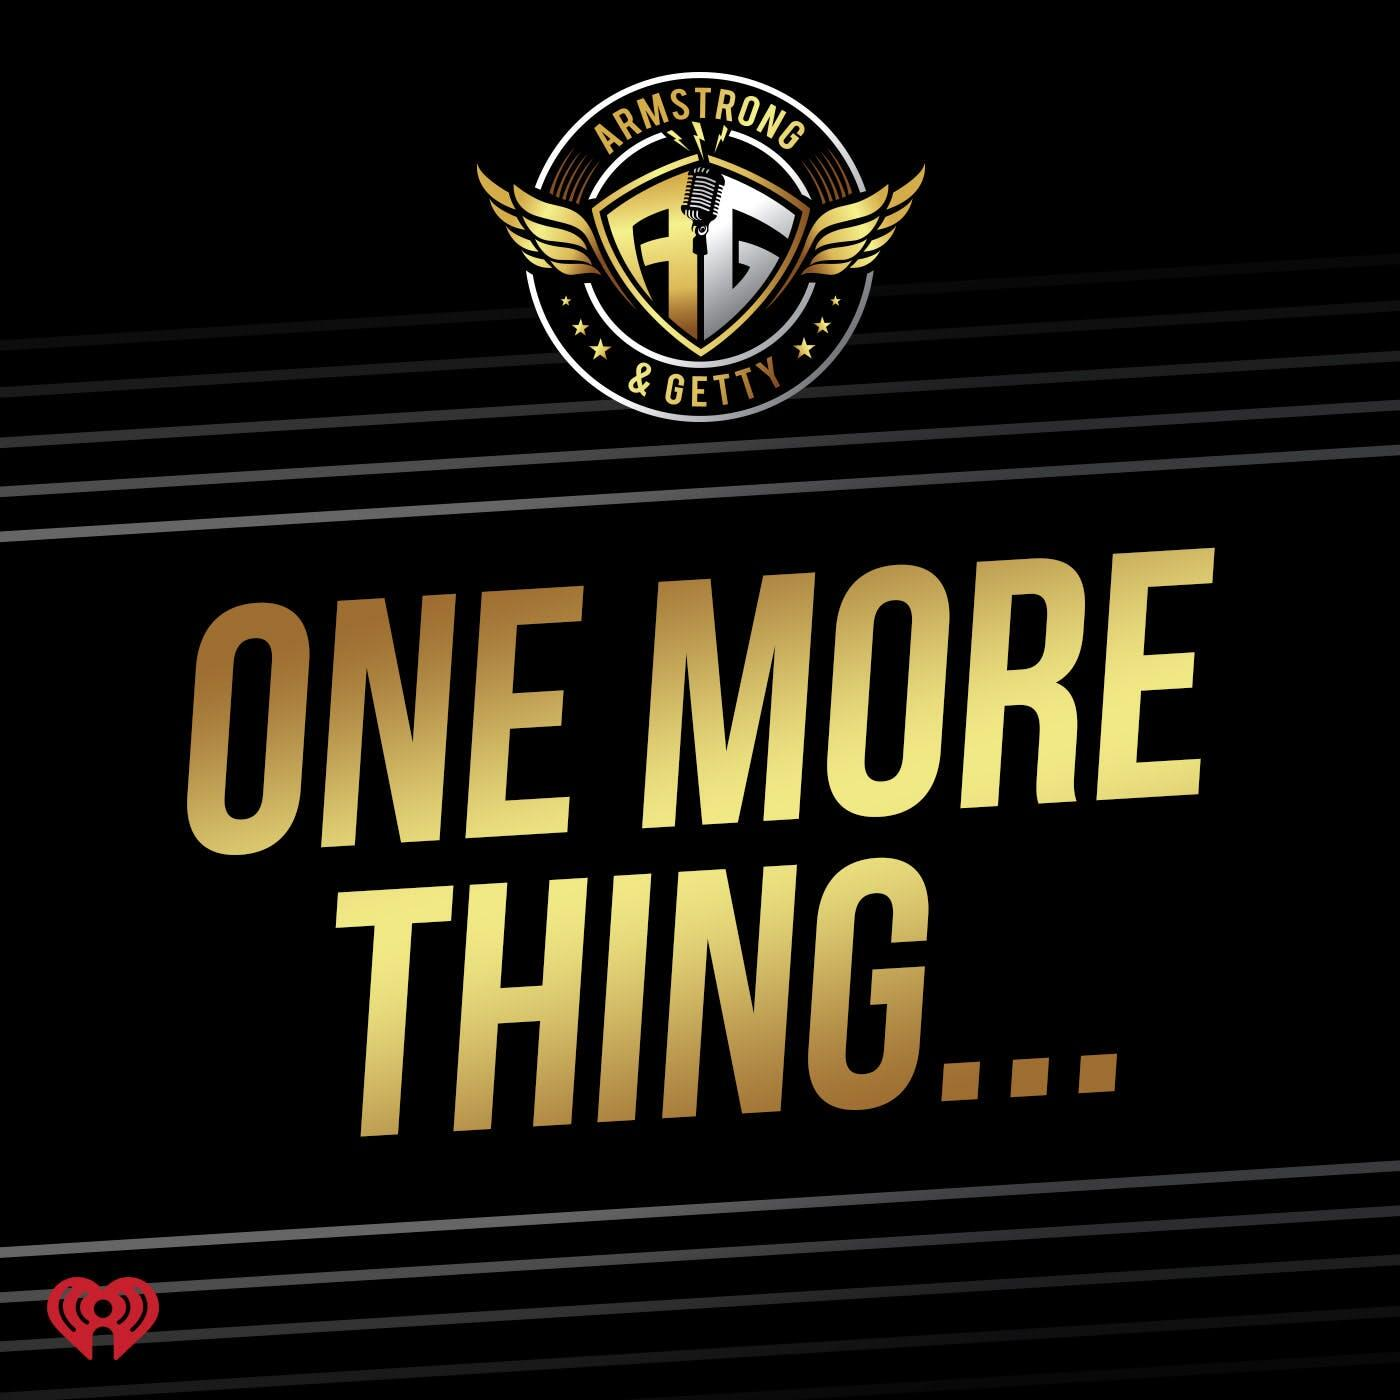 Listen Free to Armstrong & Getty One More Thing on iHeartRadio